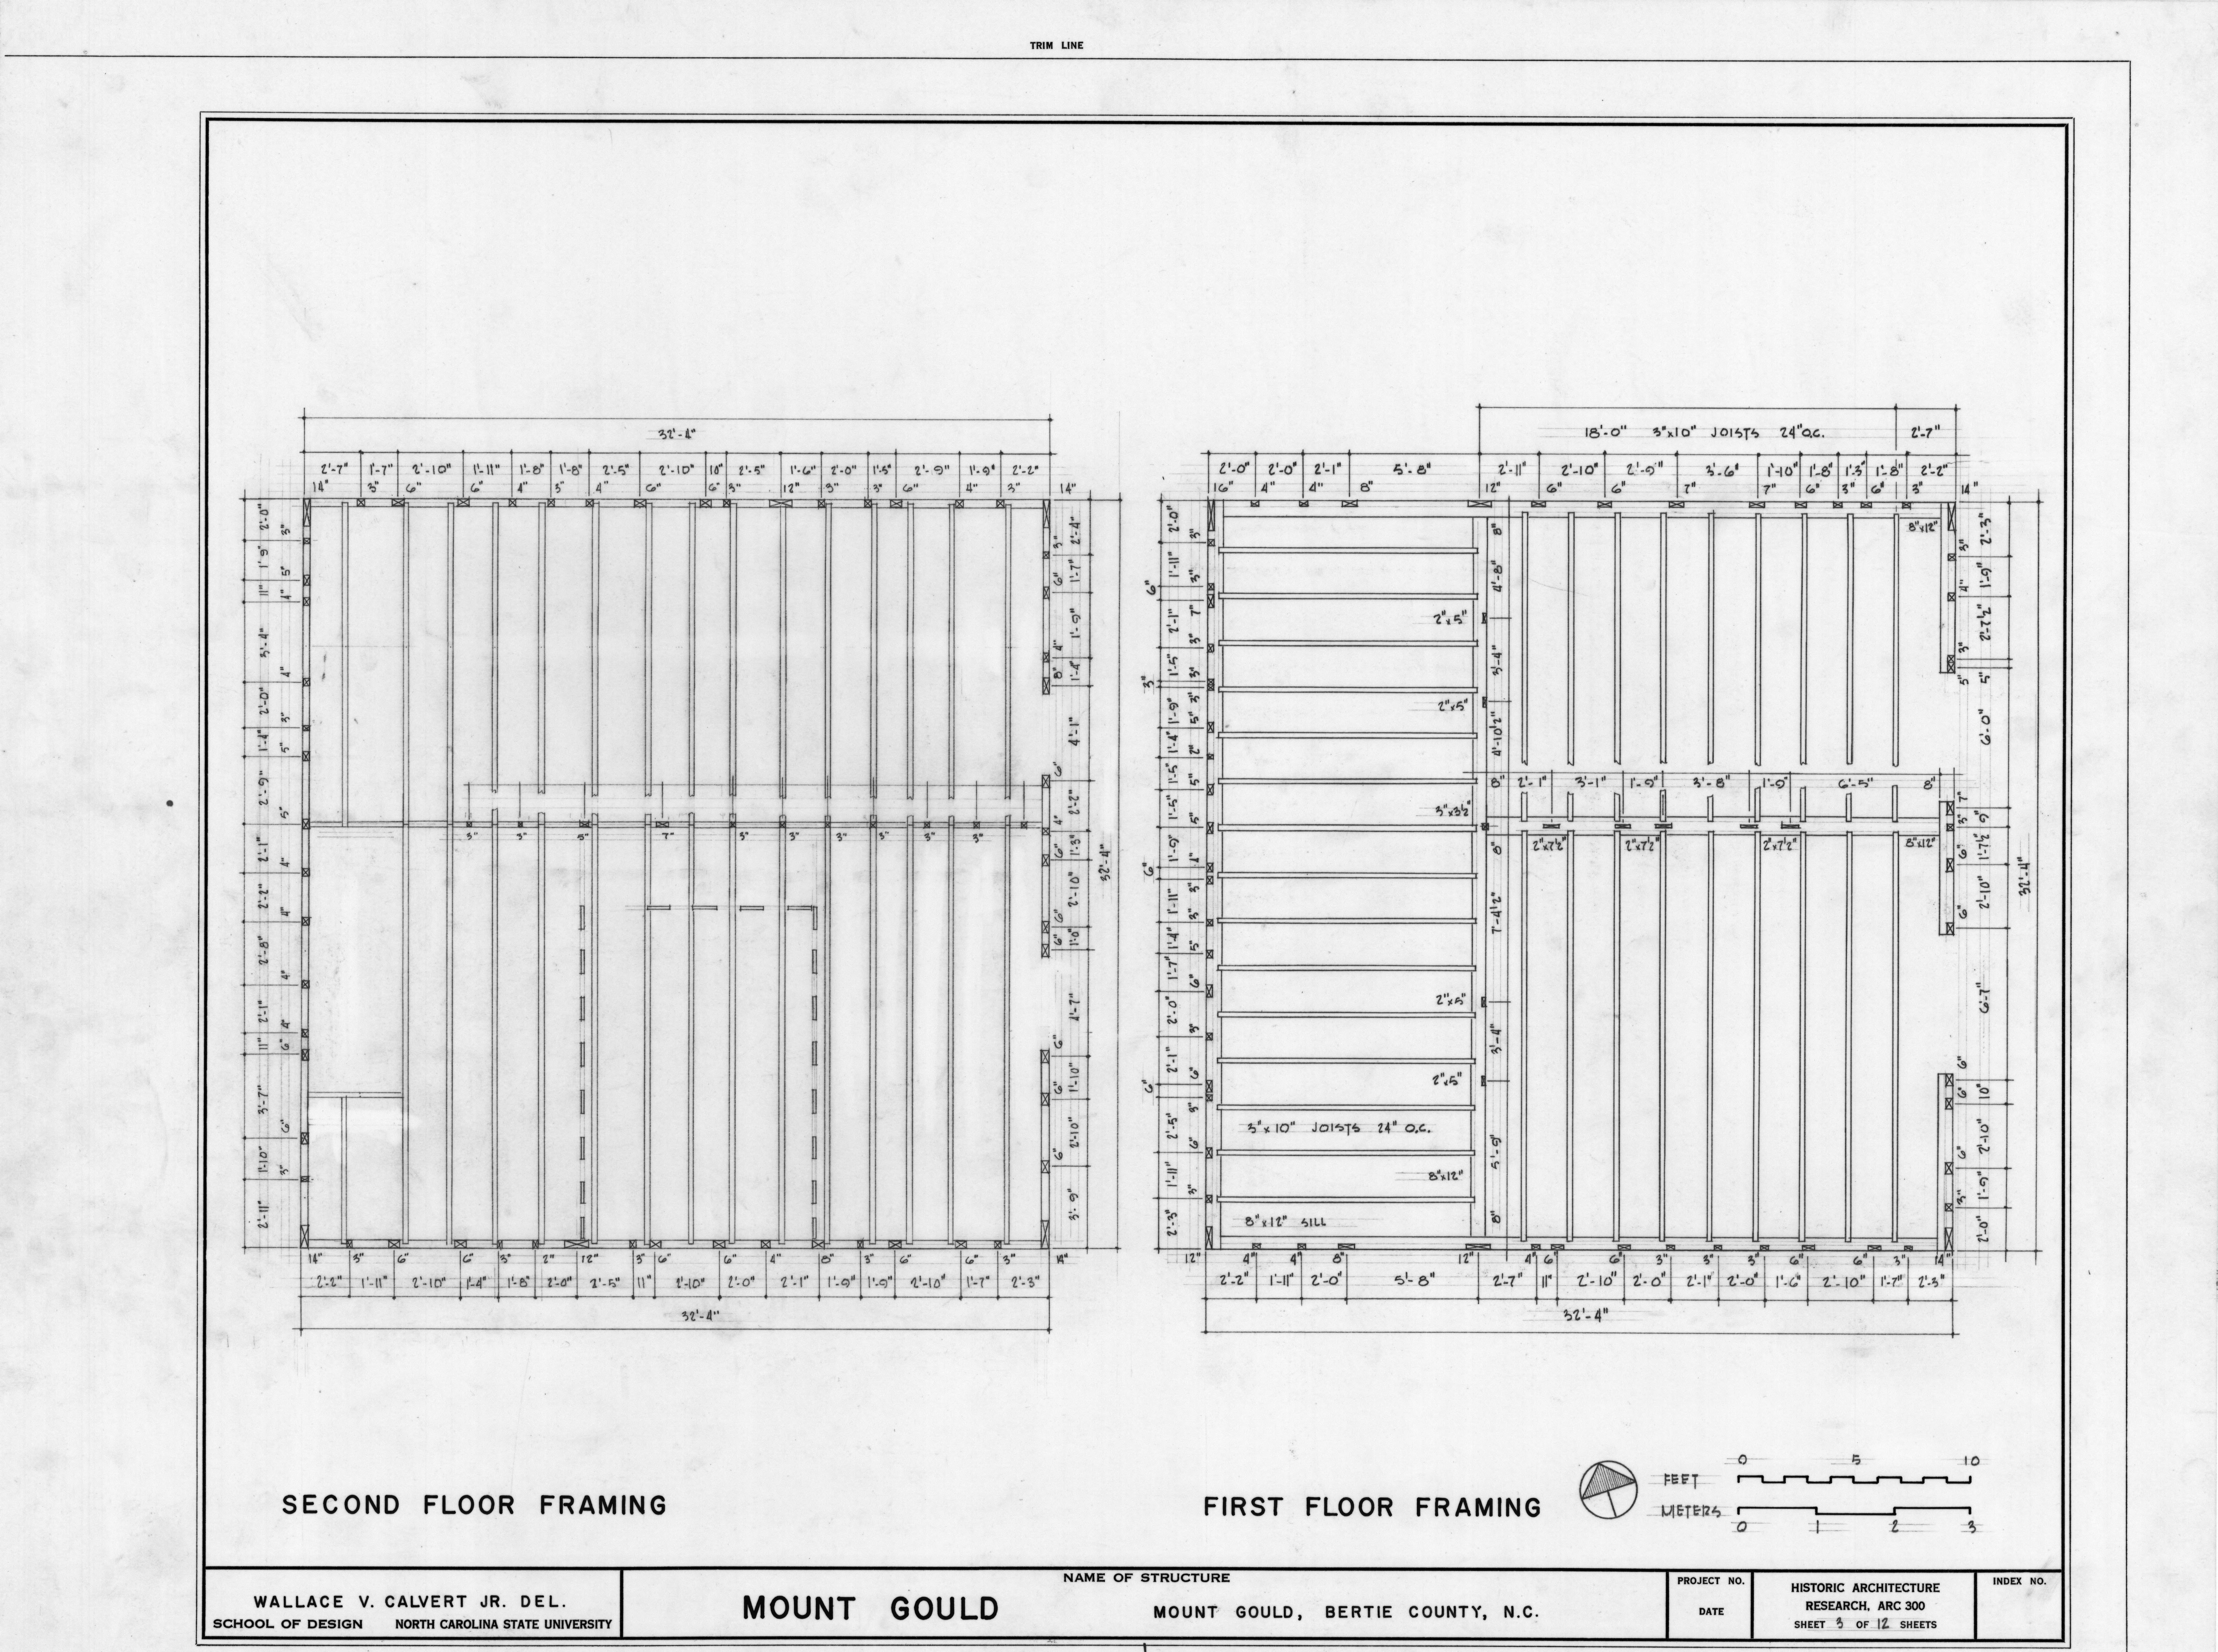 2nd floor framing plan images